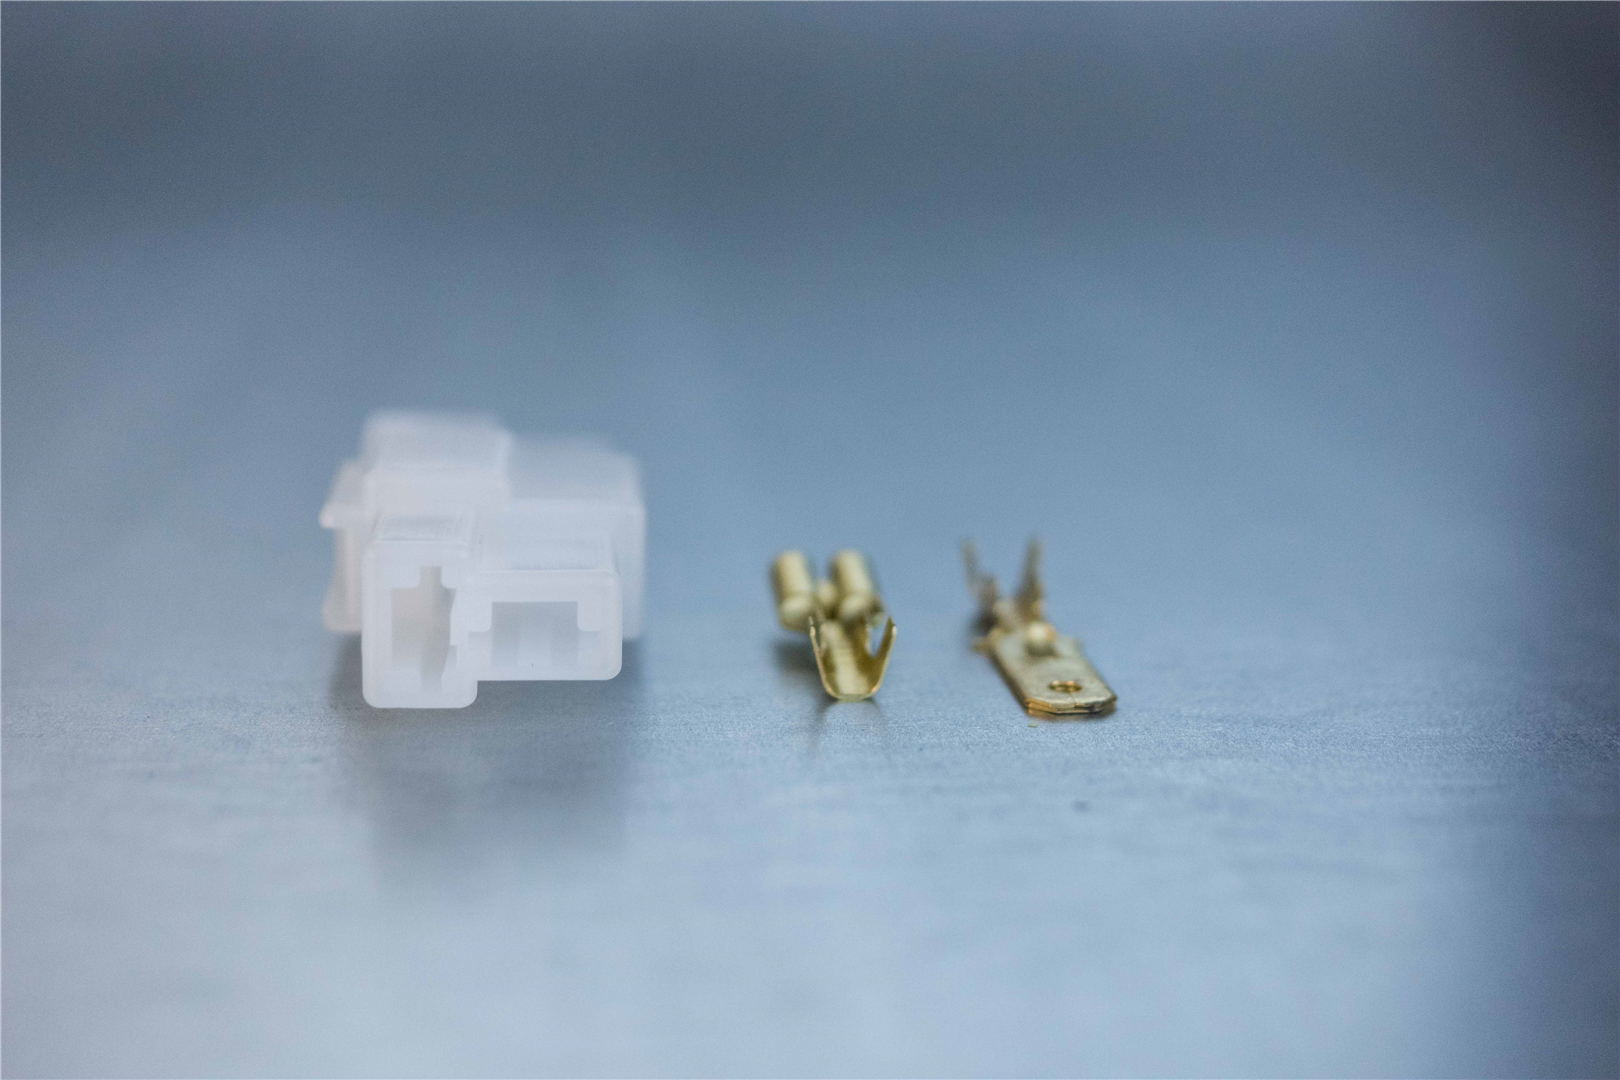 6.3mm 2-pin Latching M/F Nylon Connector